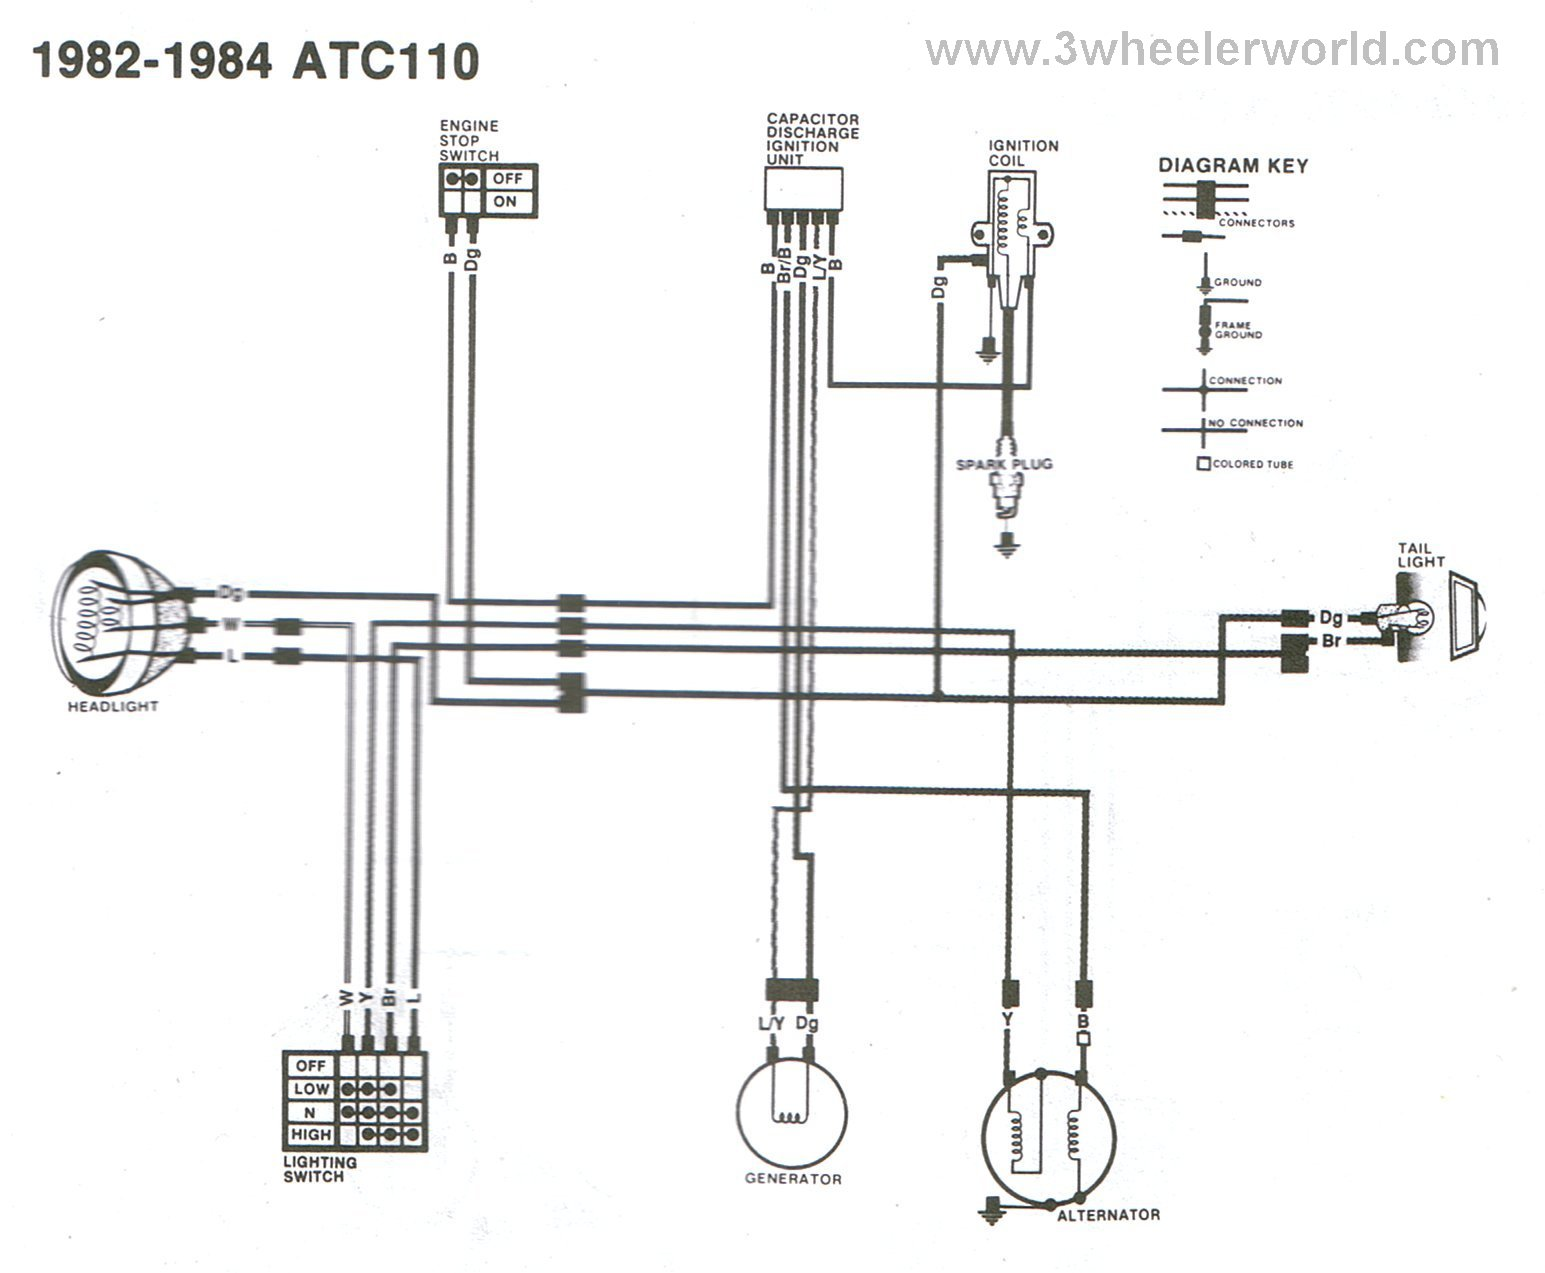 ATC110x82Thru84 3 wheeler world tech help honda wiring diagrams 1985 honda atc 110 wiring diagram at virtualis.co